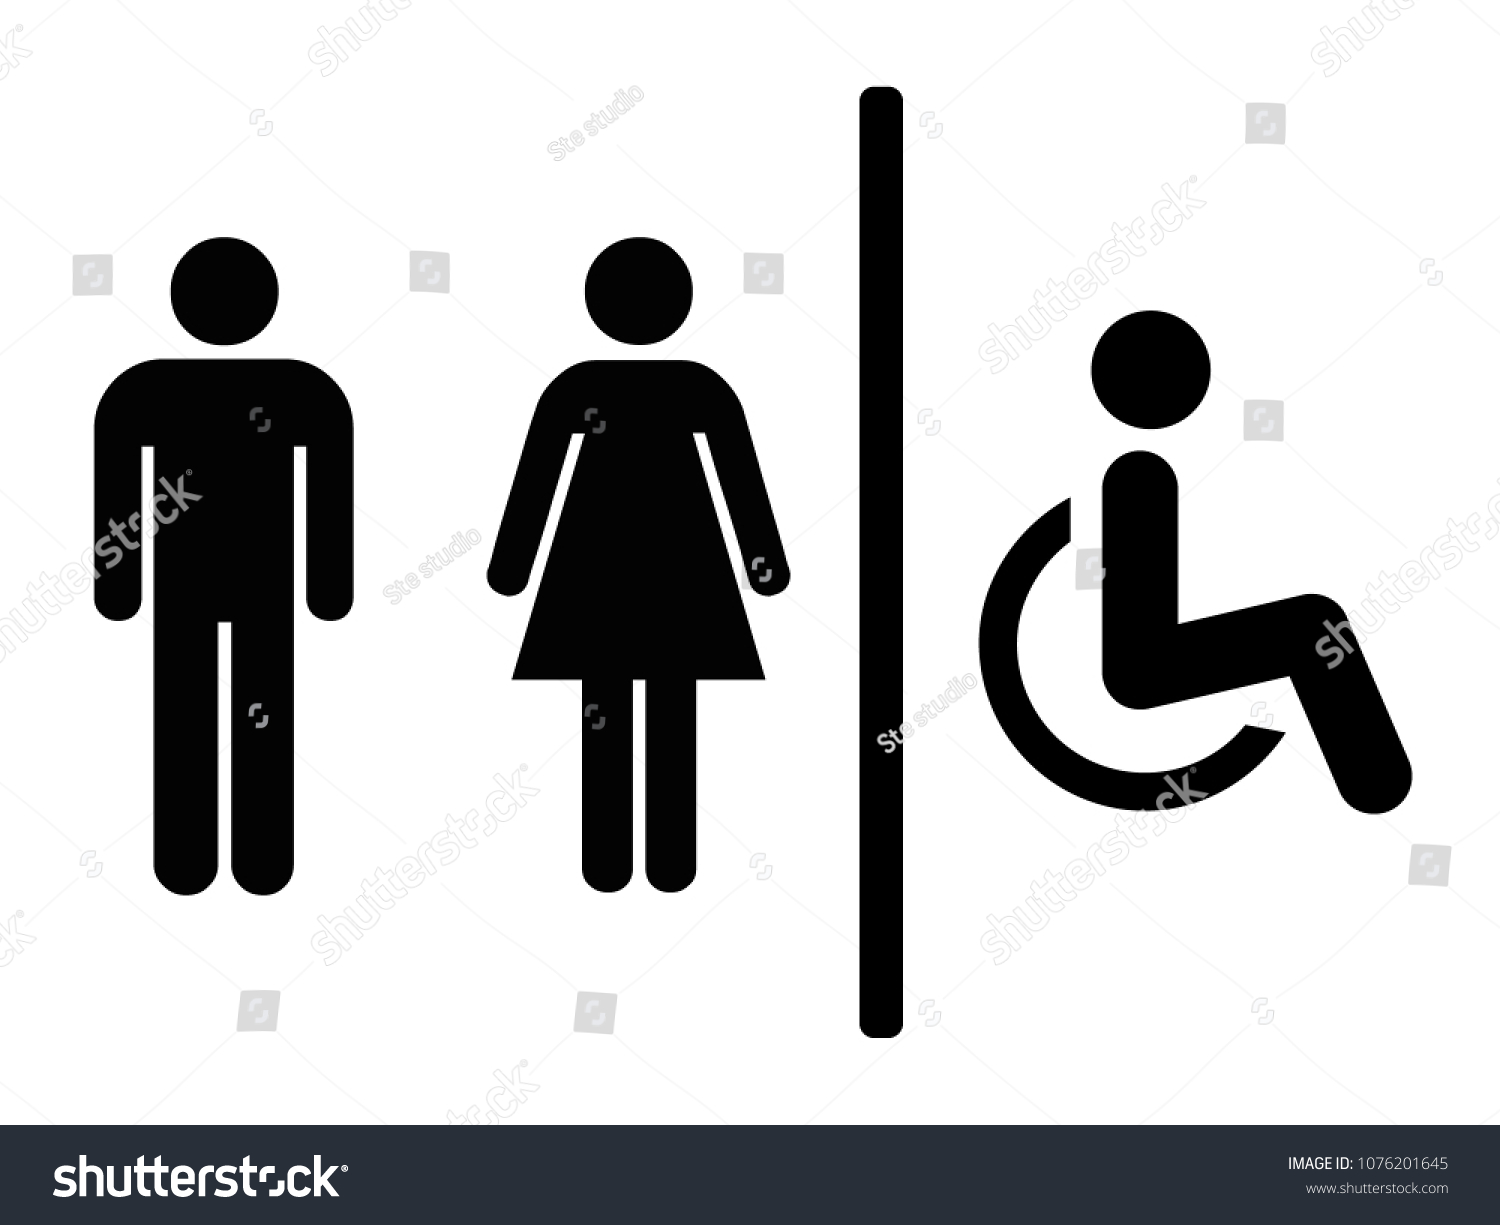 toilet sign vector illustration stock vector royalty free 1076201645 shutterstock